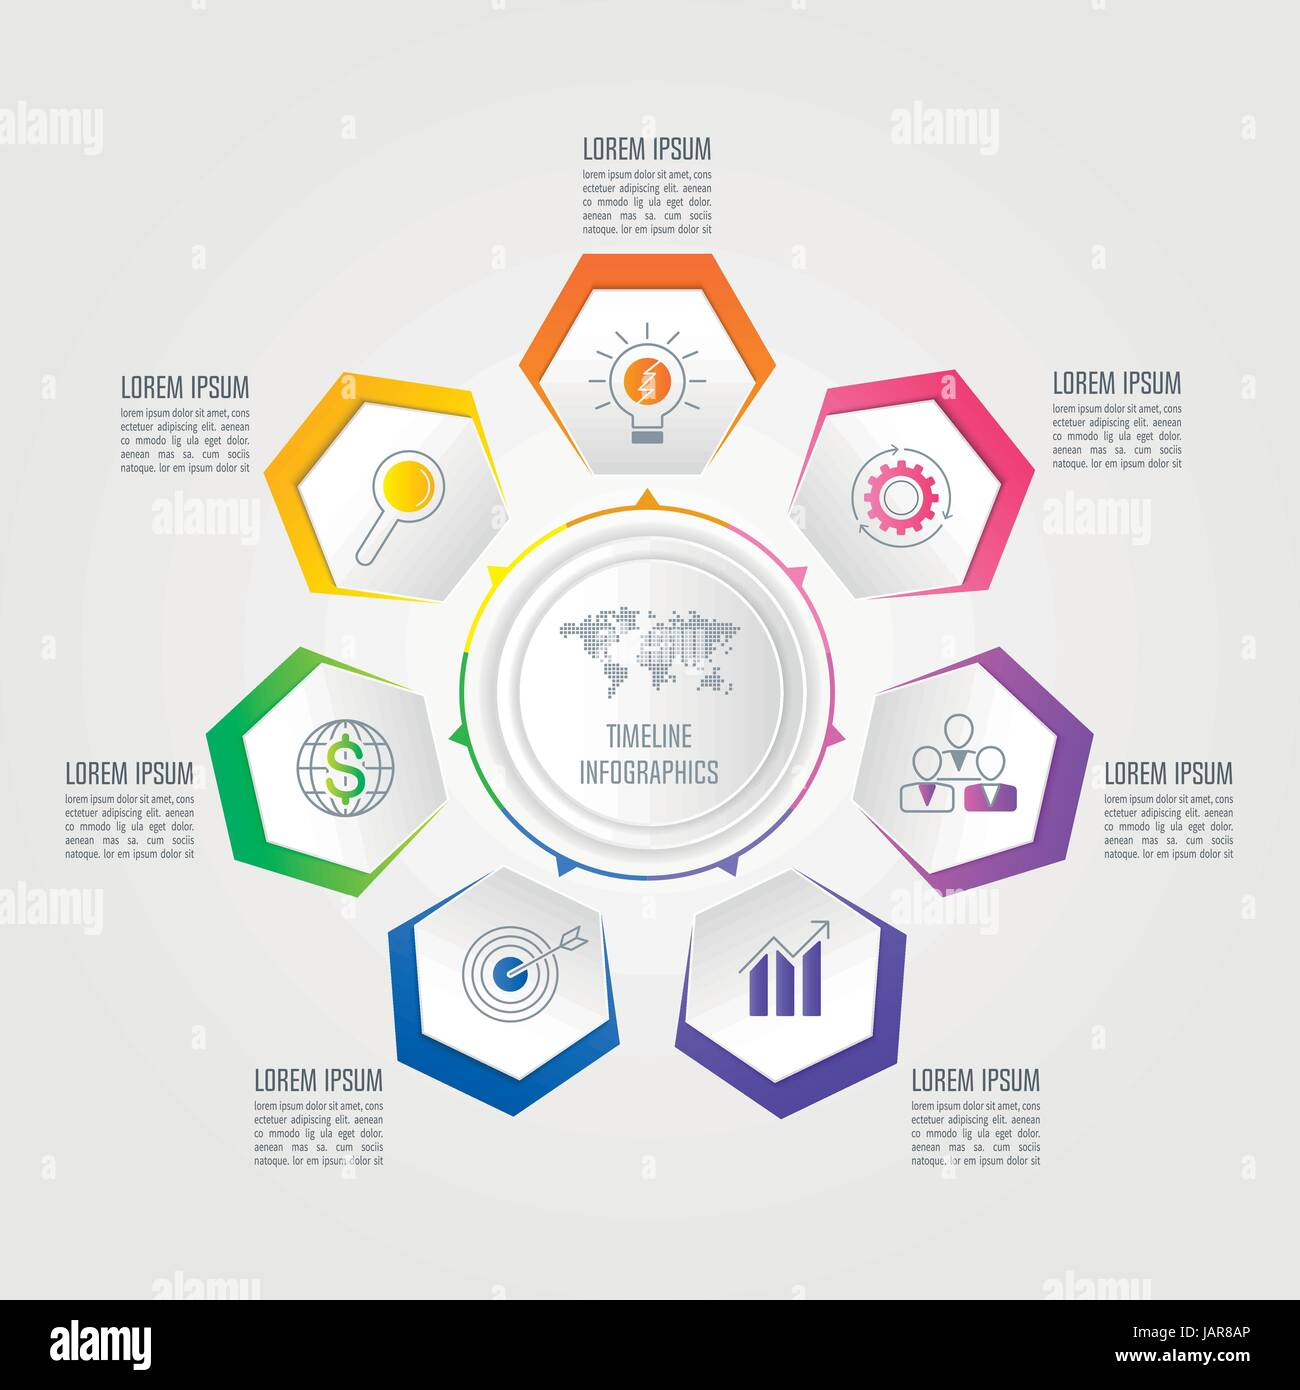 creative concept for infographic. timeline infographic design vector